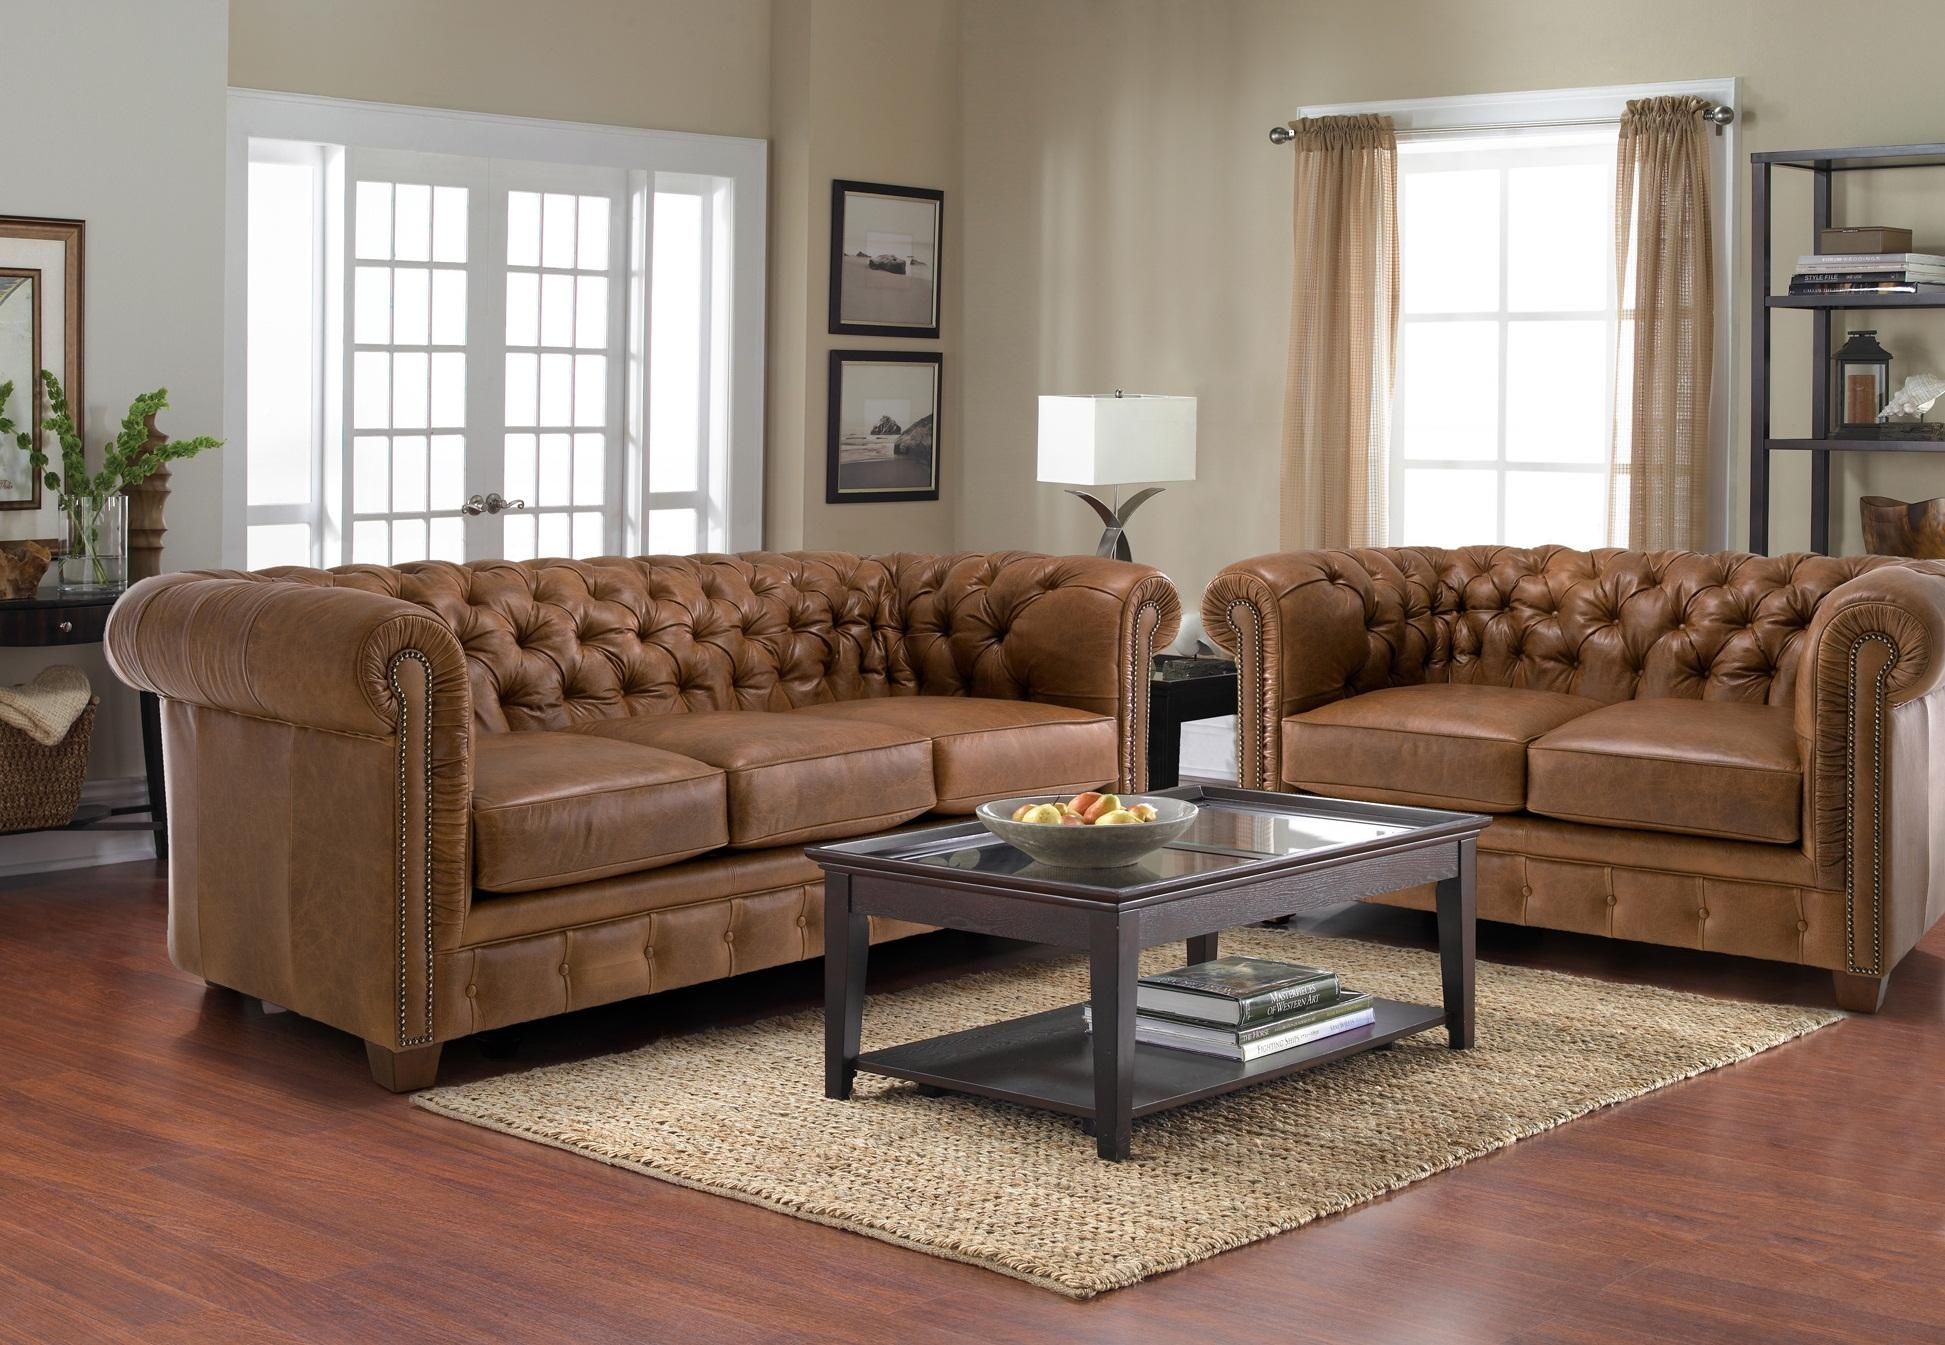 Old And Vintage Brown Leather Tufted Sofa With 2 And 3 Cushions In Inside Brown Leather Tufted Sofas (Image 13 of 20)